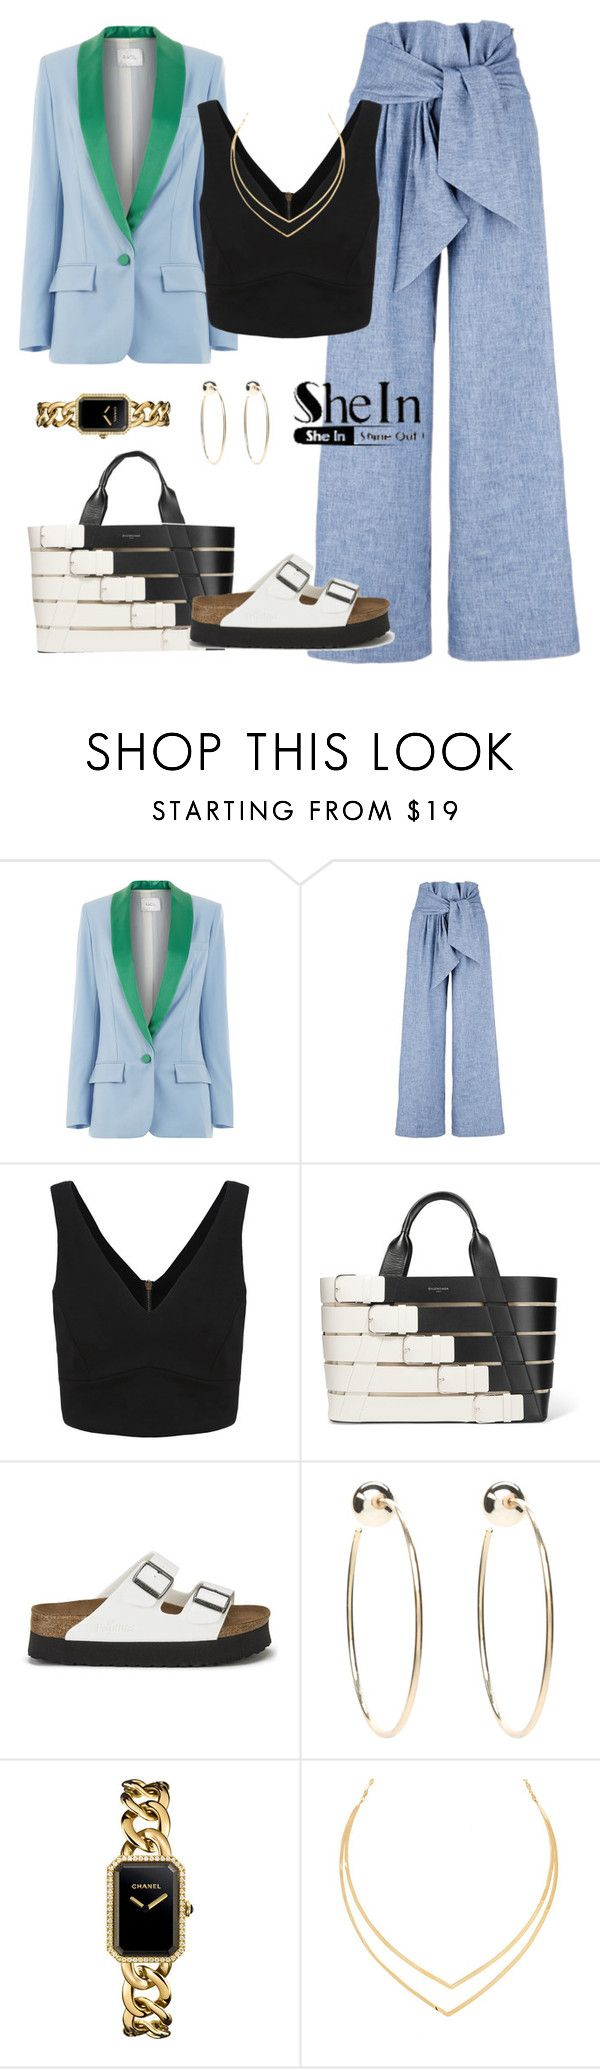 """""""Casual"""" by yinggao ❤ liked on Polyvore featuring Racil, MSGM, Balenciaga, Birkenstock, Bebe, Chanel, Lana, Sheinside, casualoutfit and shein"""